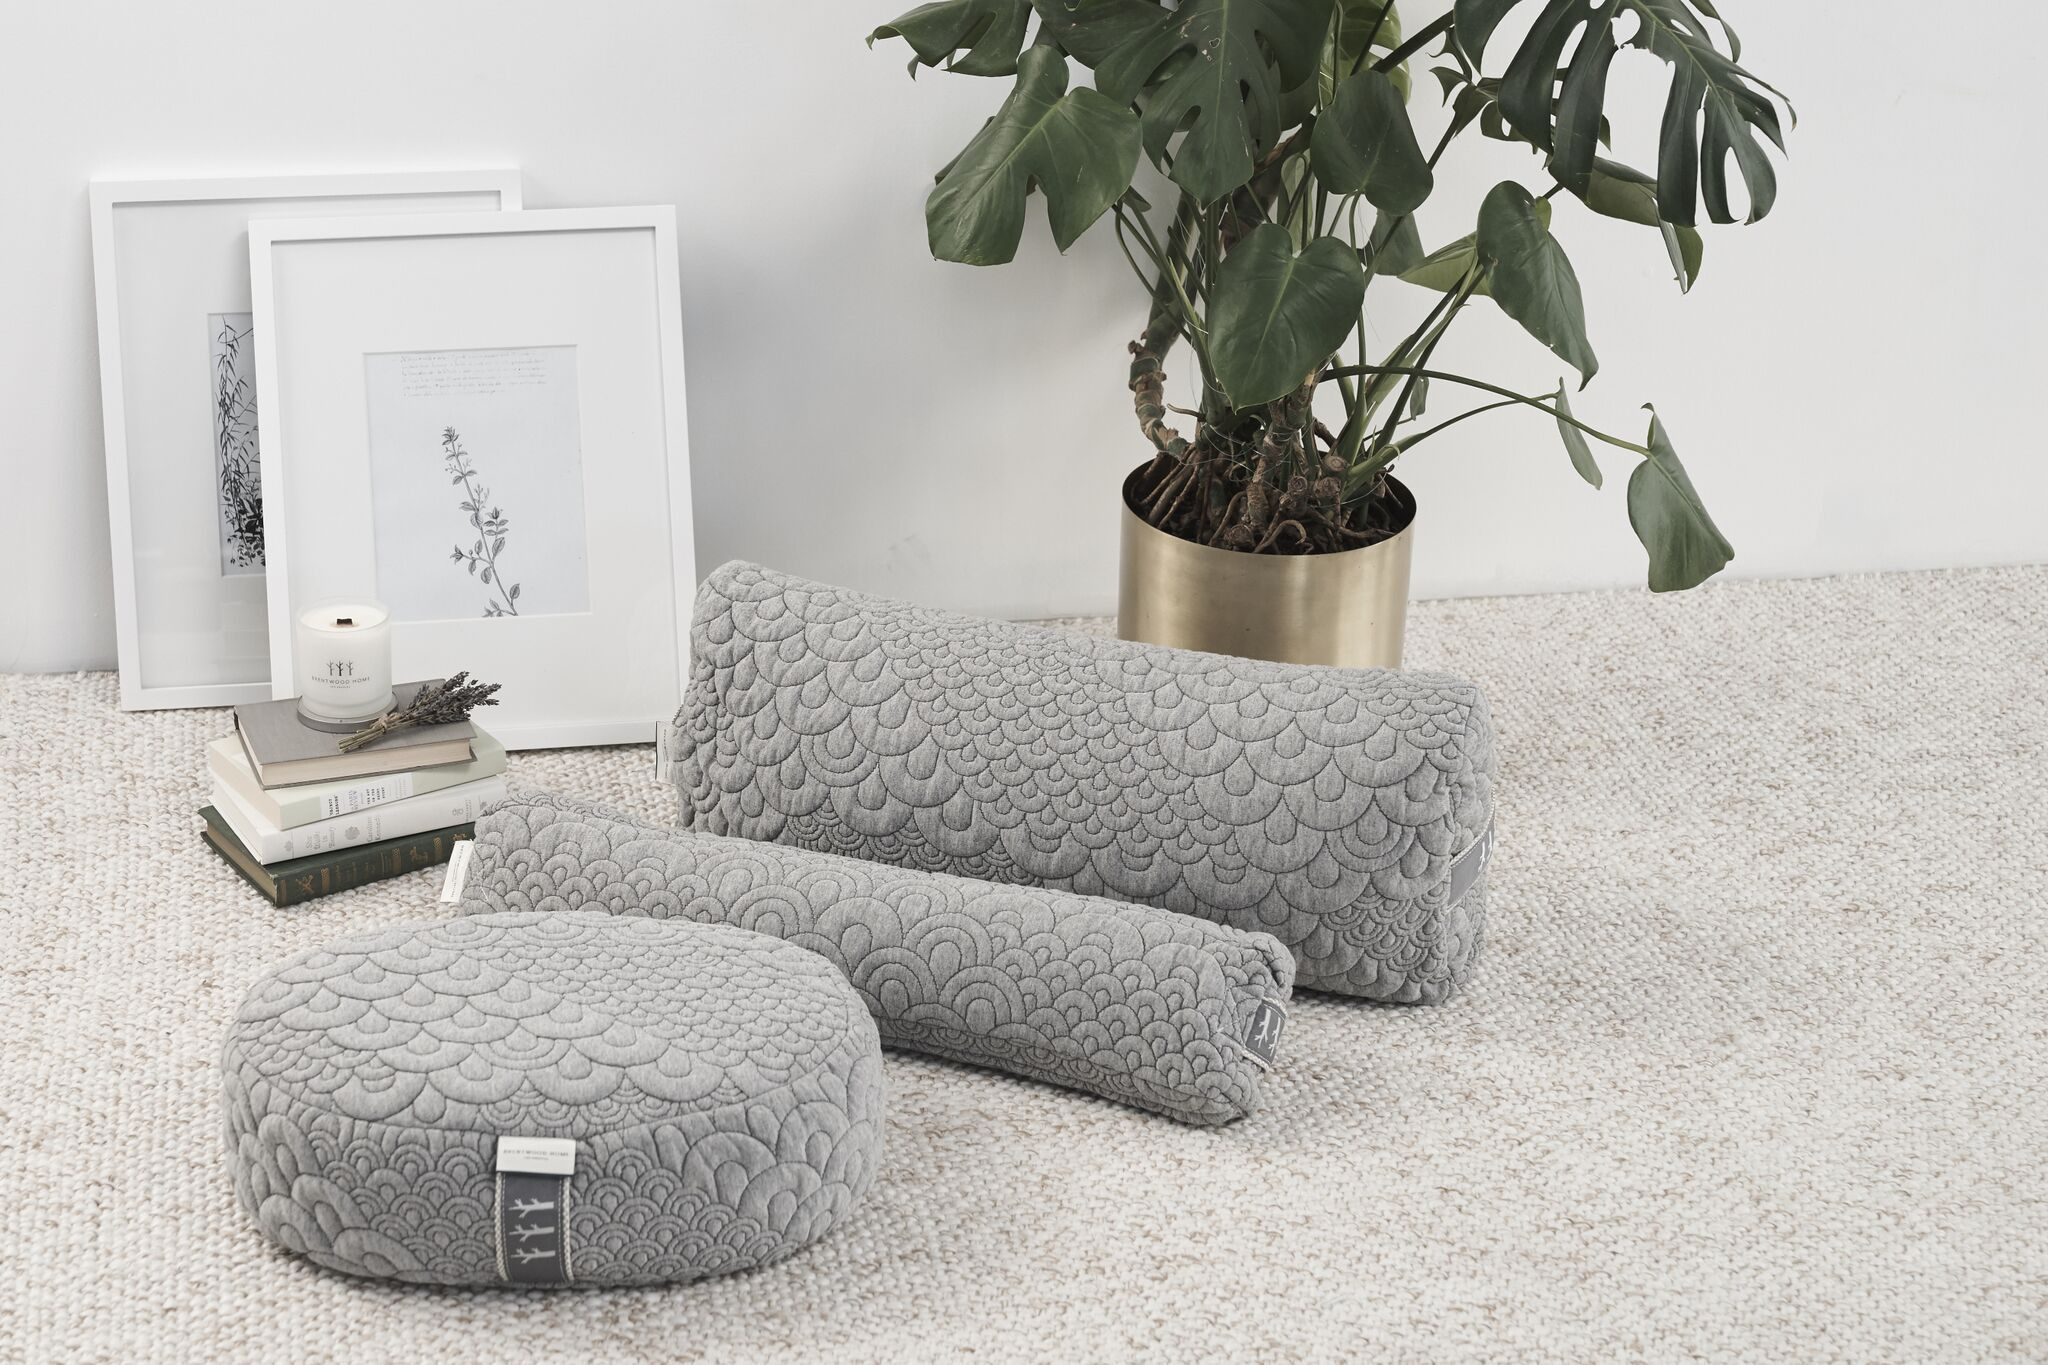 on deals zafu buckwheat roound filled get yoga cotton your line color bolster choose meditation cheap cushion shopping pillow quotations find guides peace